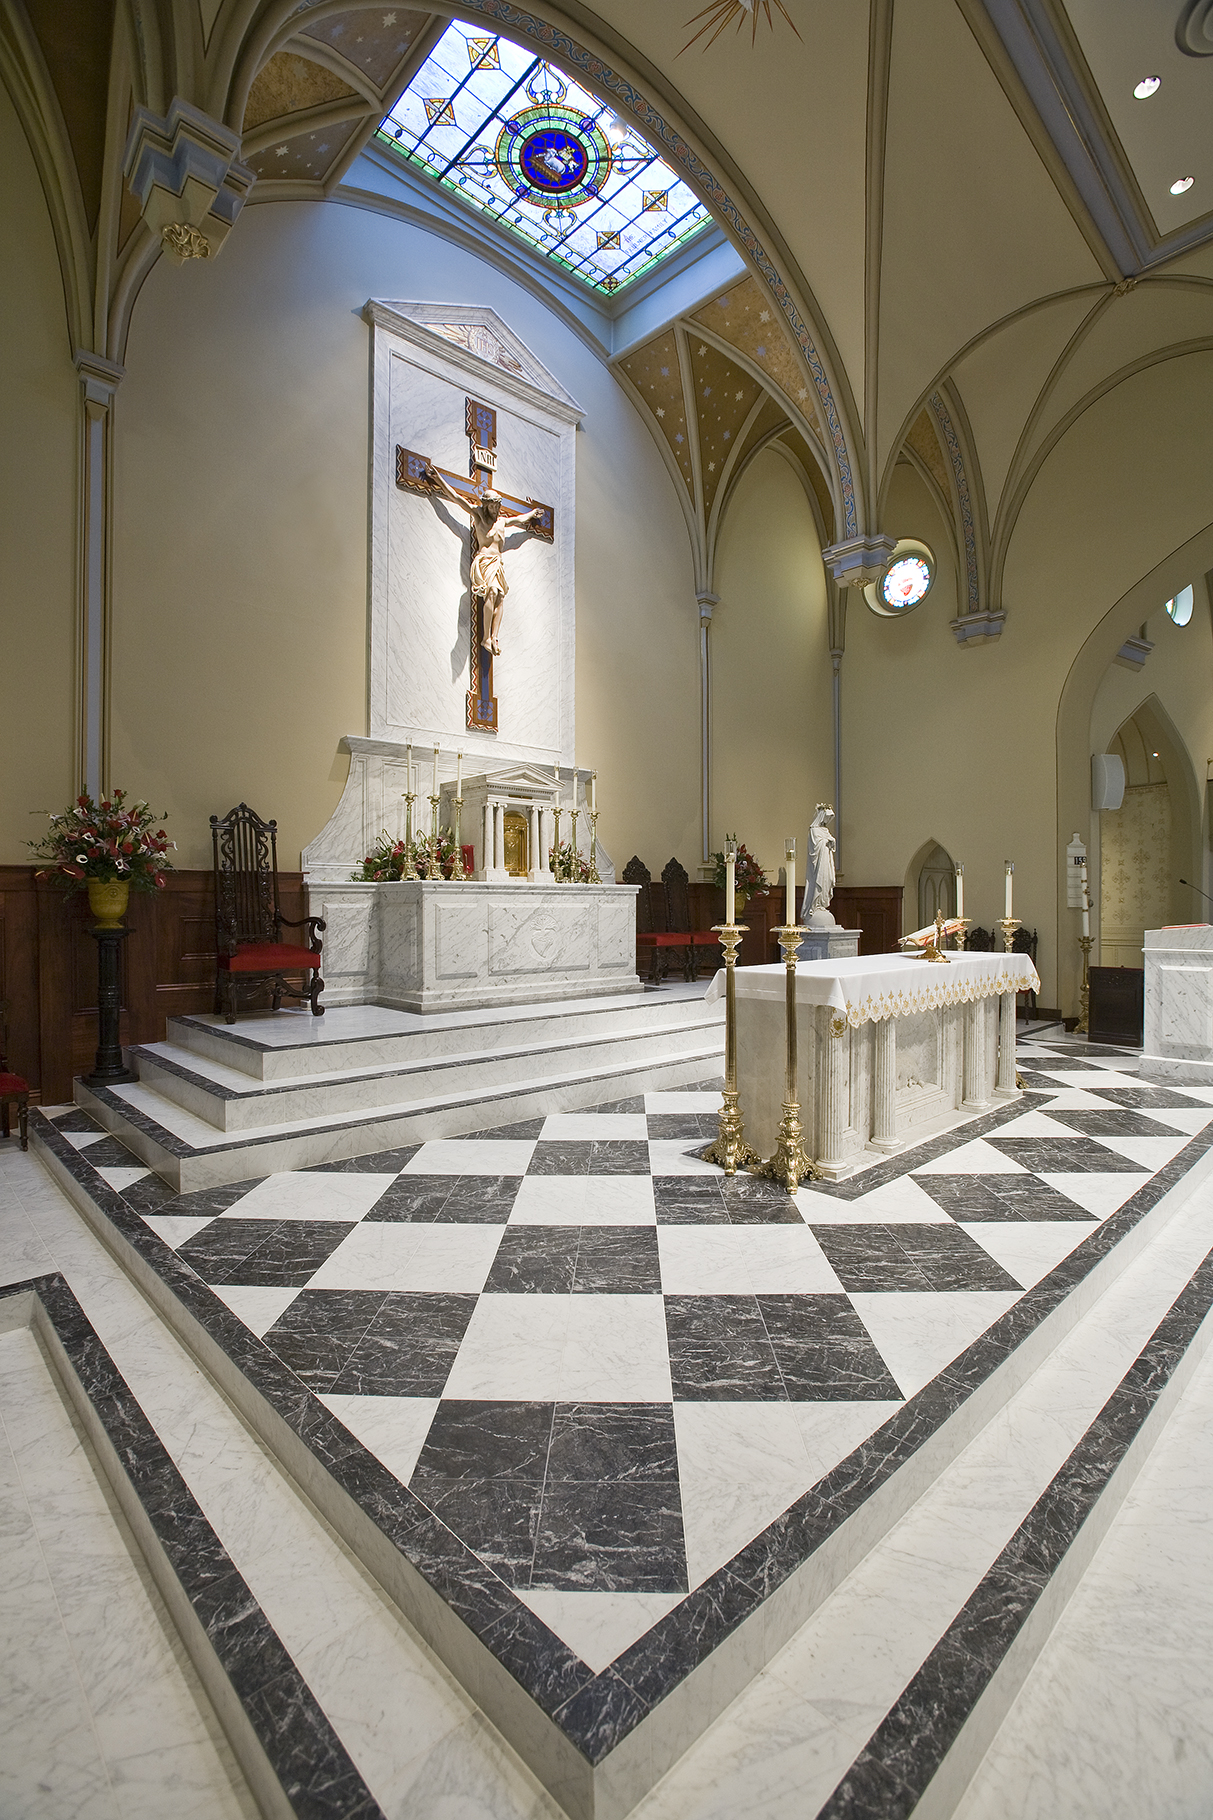 White Carrara Grigio Carnico honed marble Basilica of Saint Mary